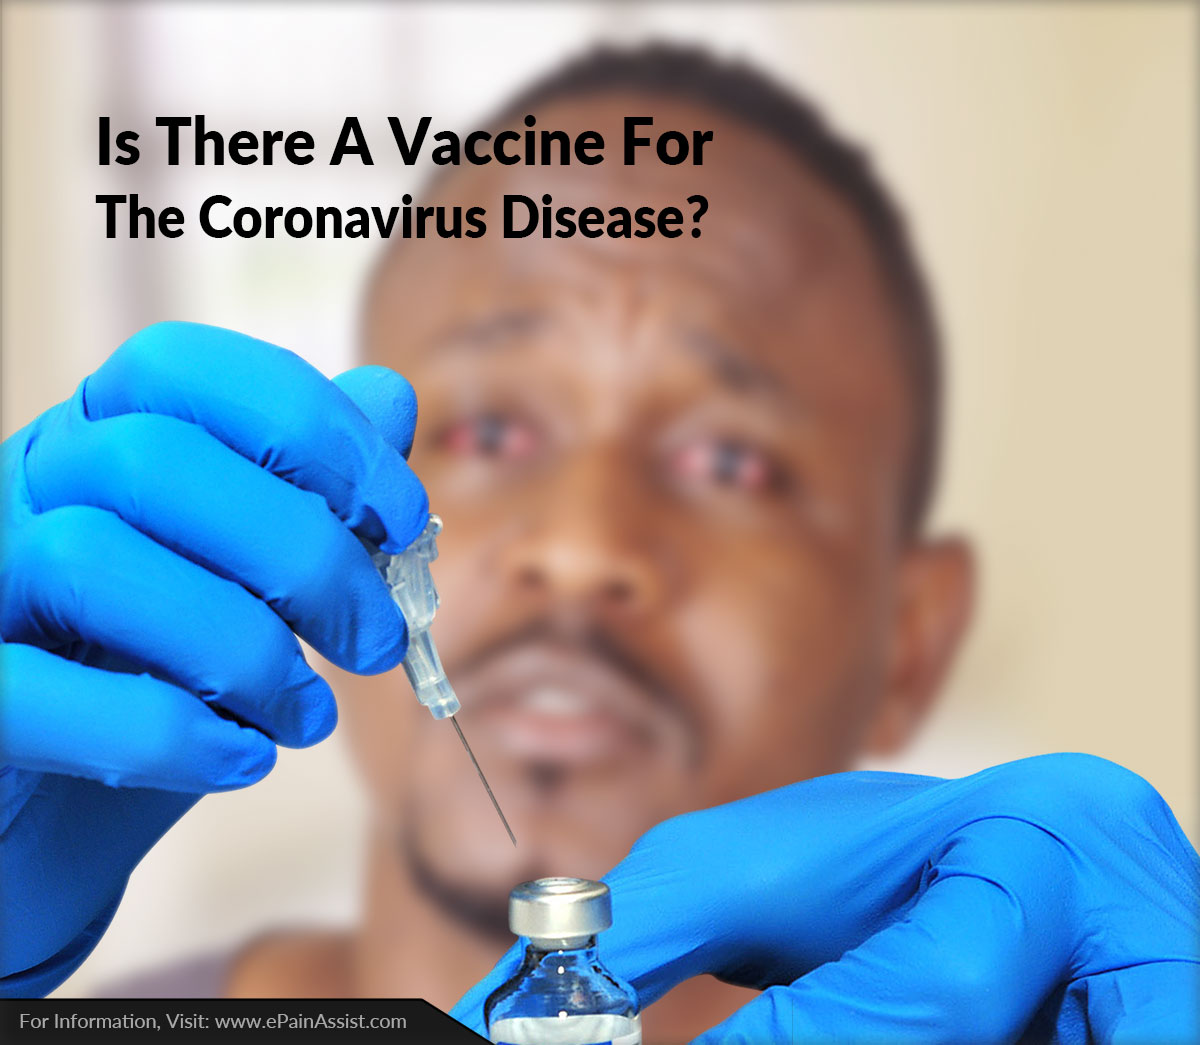 Is There A Vaccine For The Coronavirus Disease?